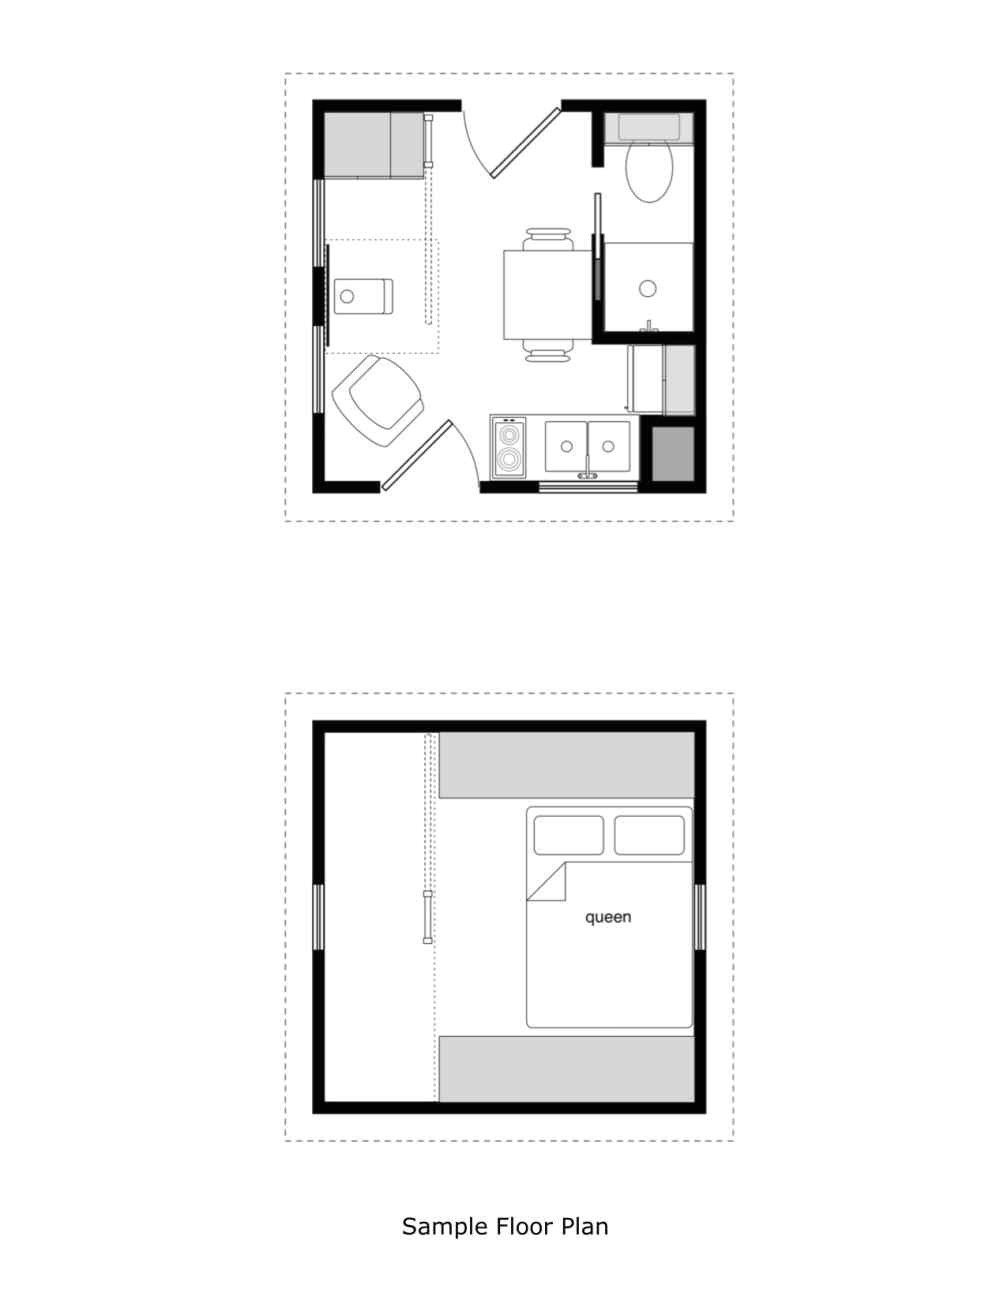 Tiny House Floor Plans 10×12 the Images Collection Of Marvellous Tiny House 10×12 Floor